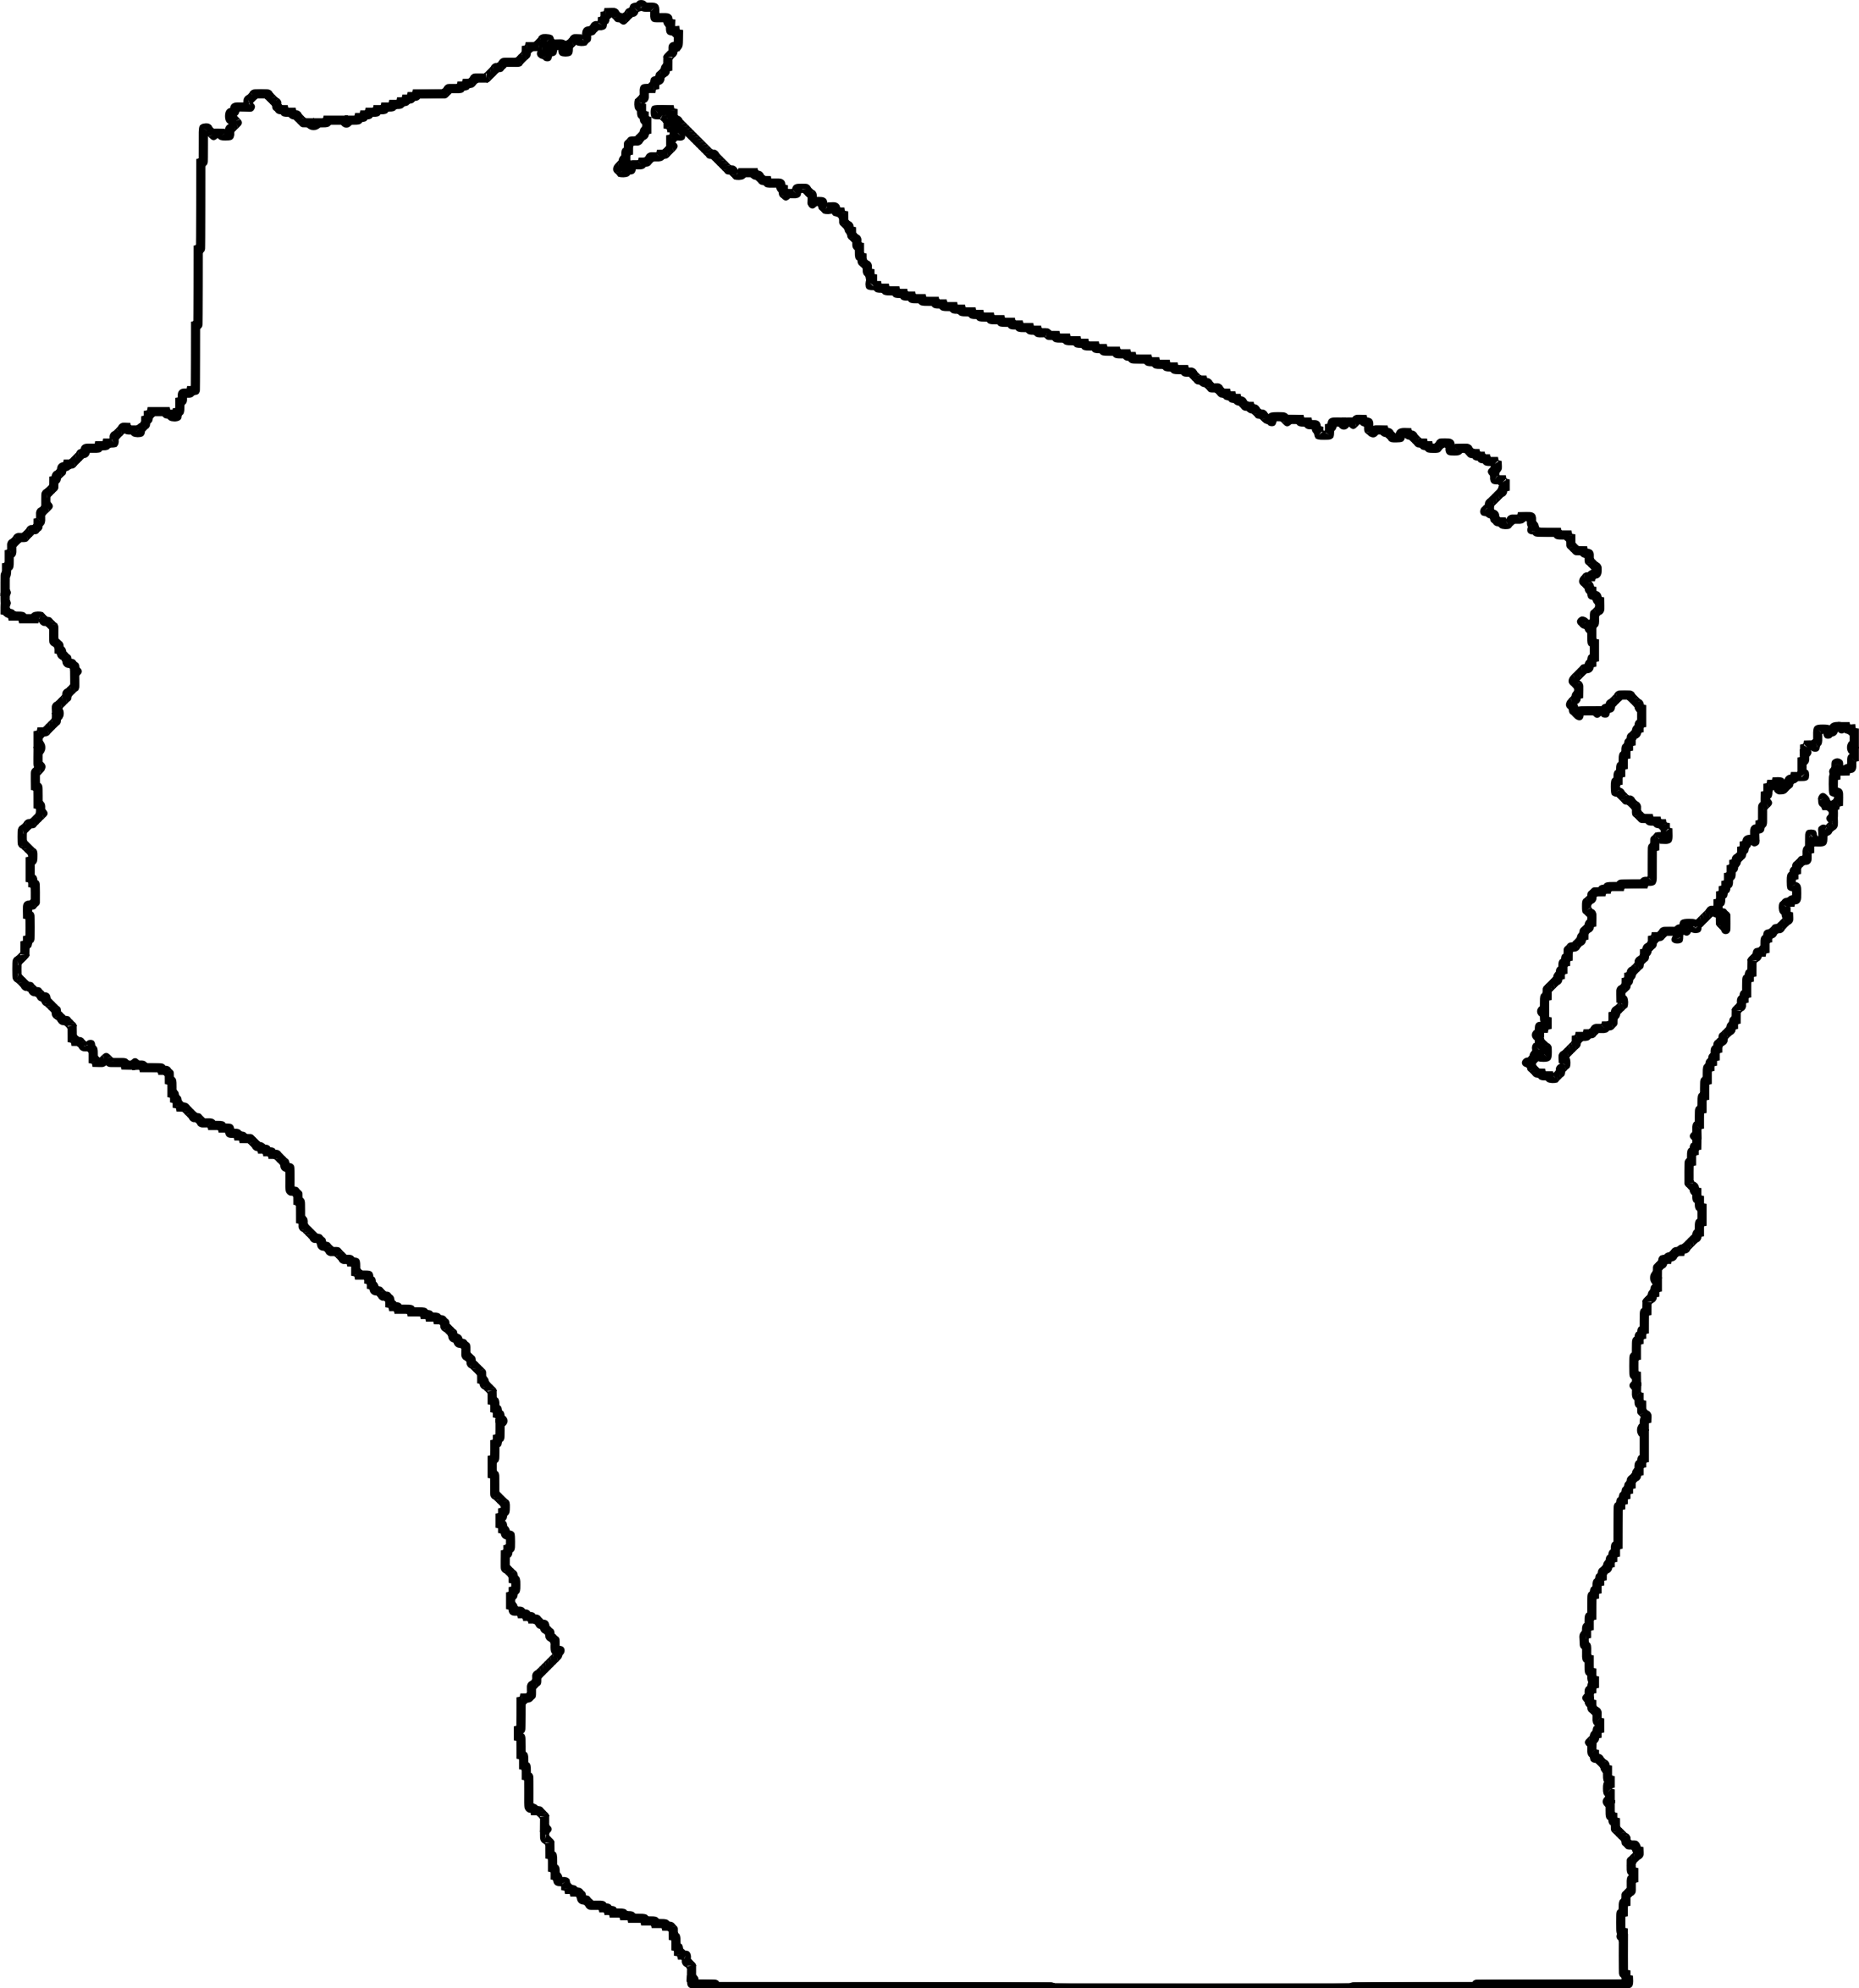 Wisconsin State Outline Art 4aWZVZj